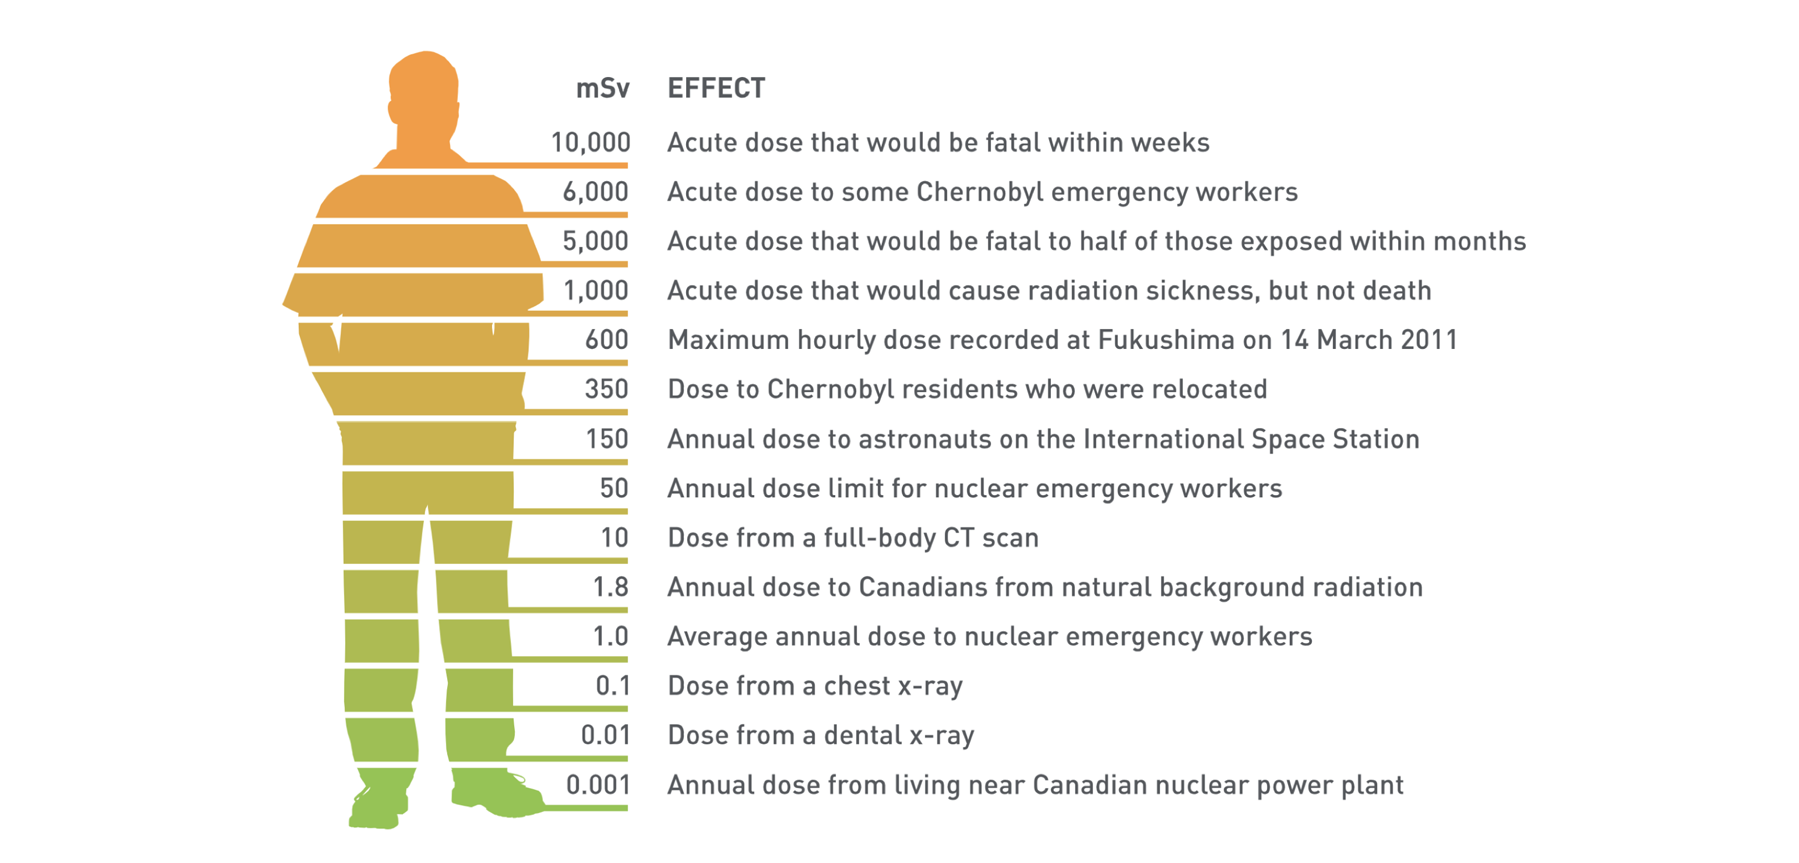 Radiation Exposure and Effects